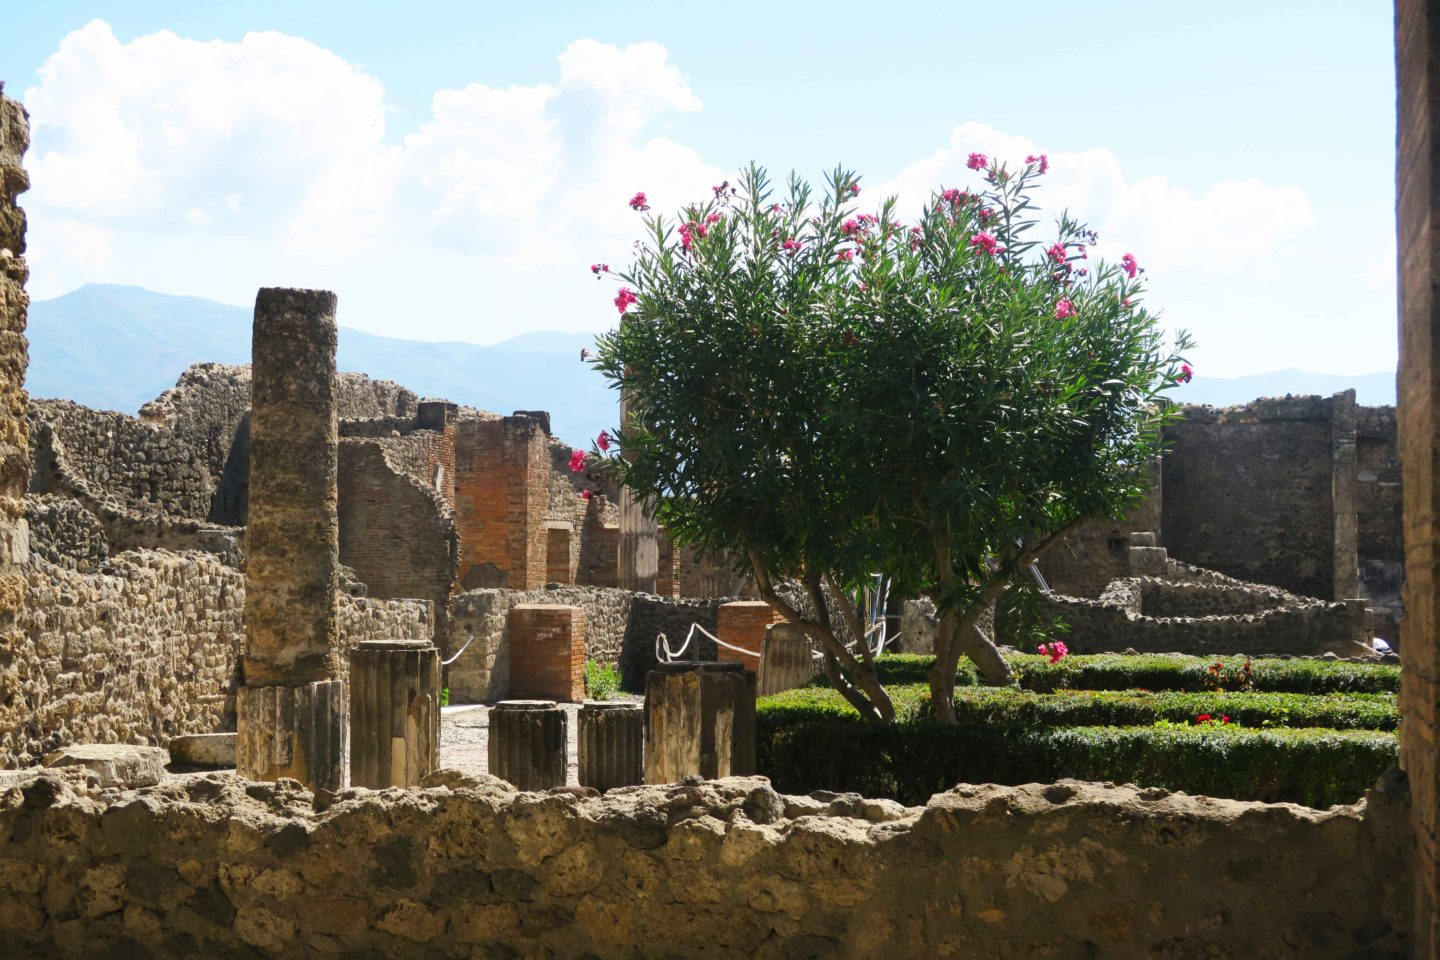 pompeii ruins with plant